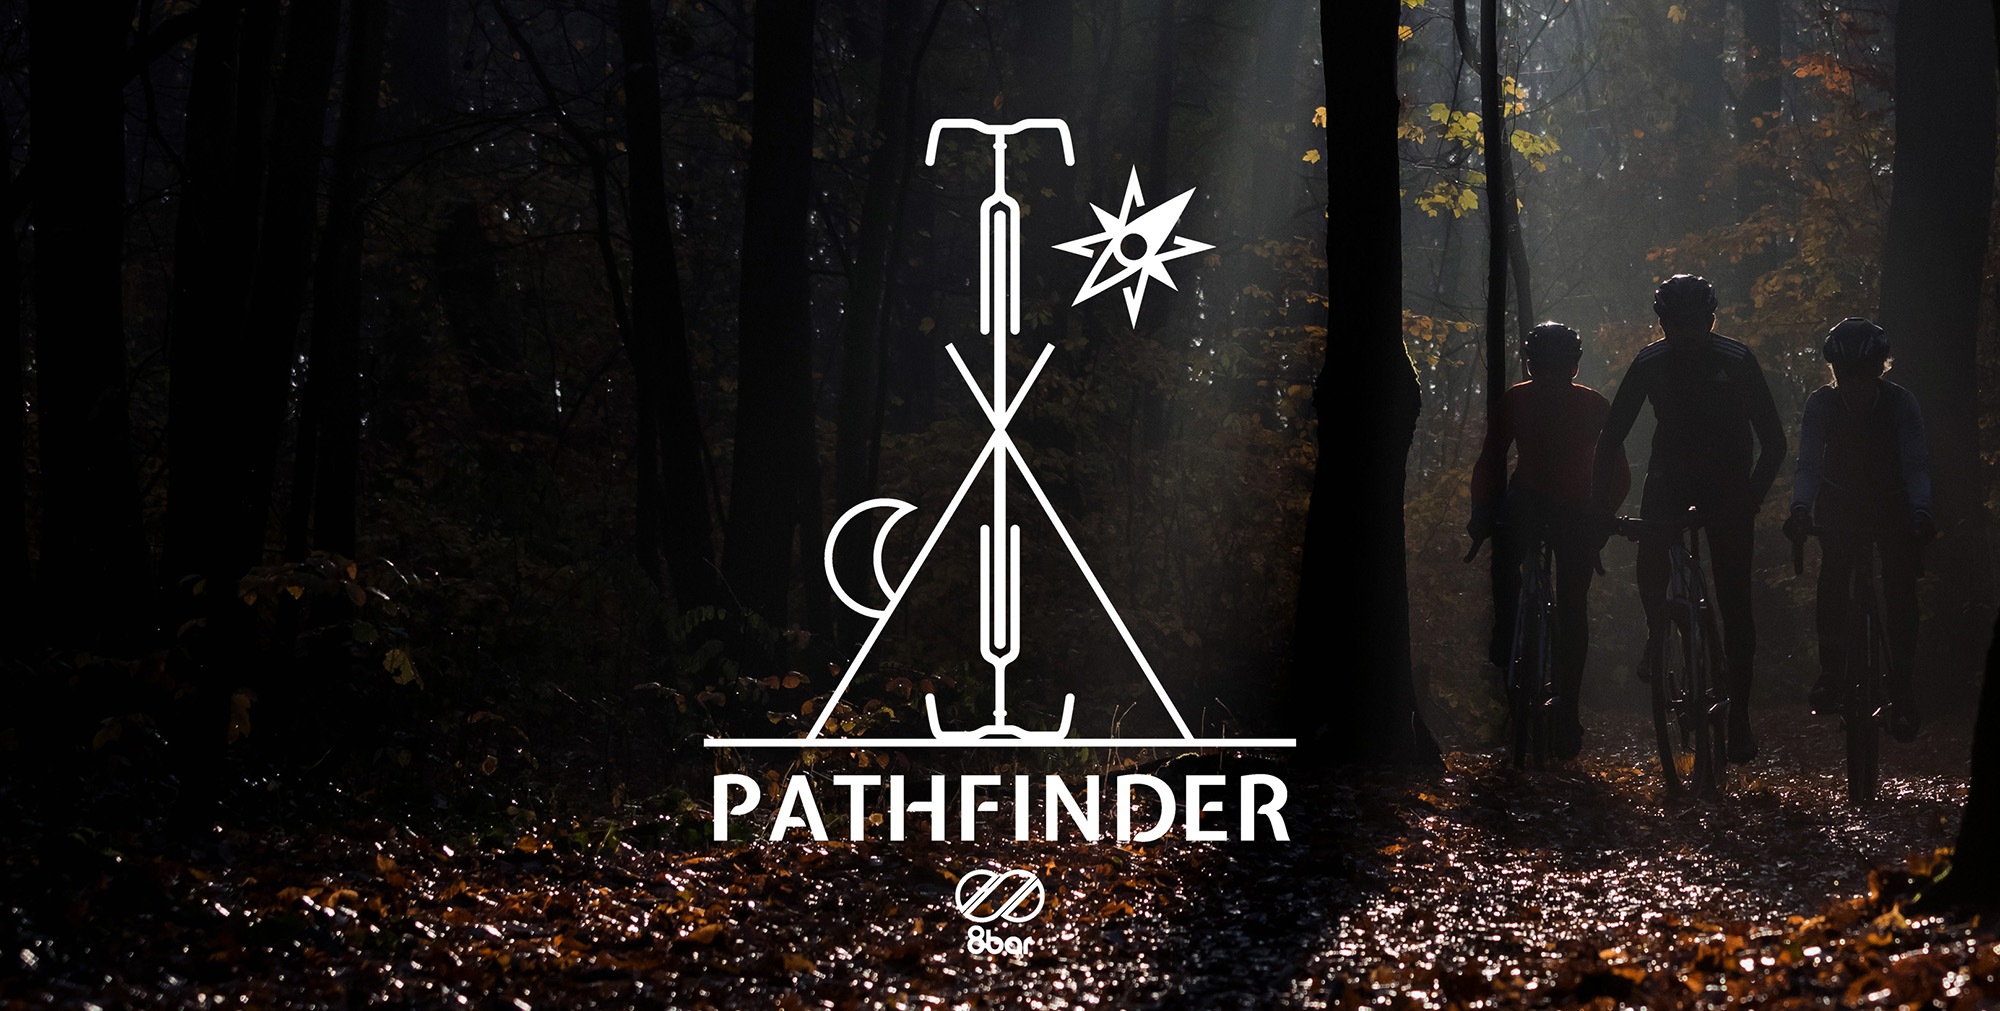 8bar pathfinder logo 2000x1000 background - 8bar Gravel Pathfinder